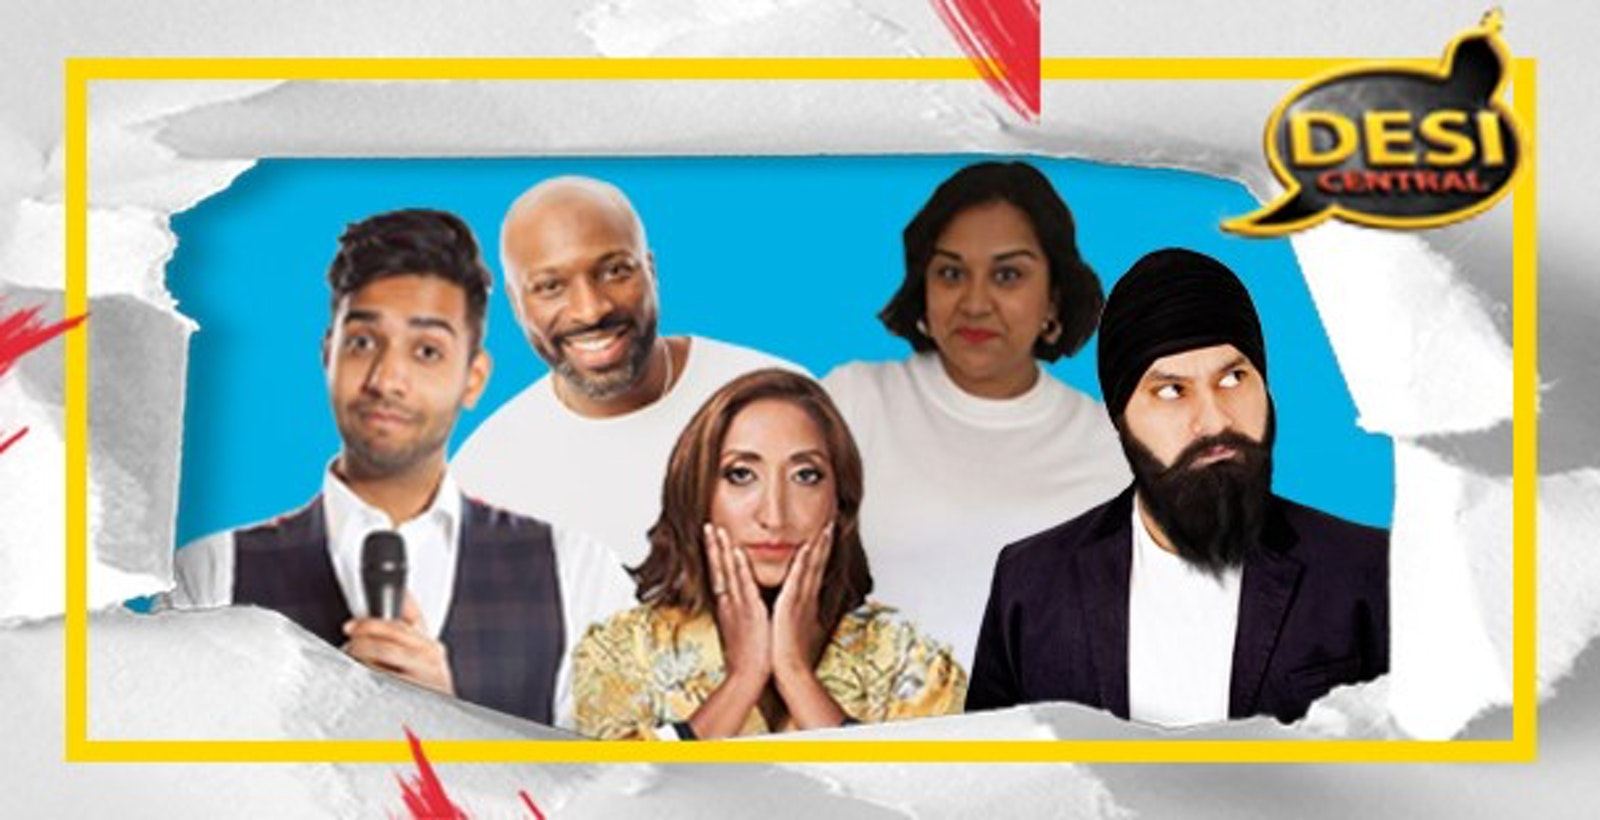 Desi Central Comedy Show : Harrow